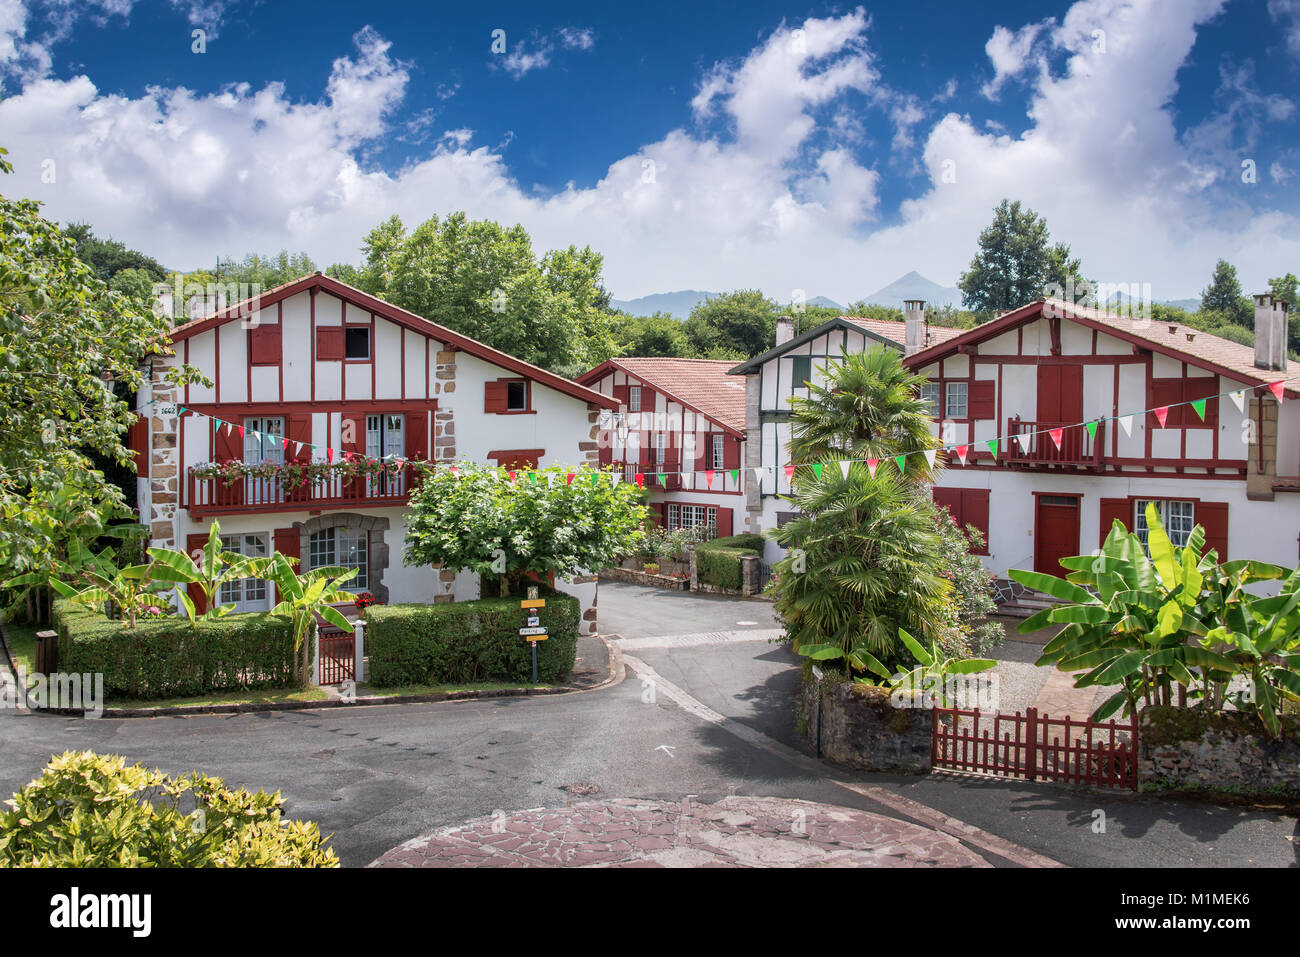 Traditional Labourdine houses in the village of Ainhoa, Basque country, France - Stock Image